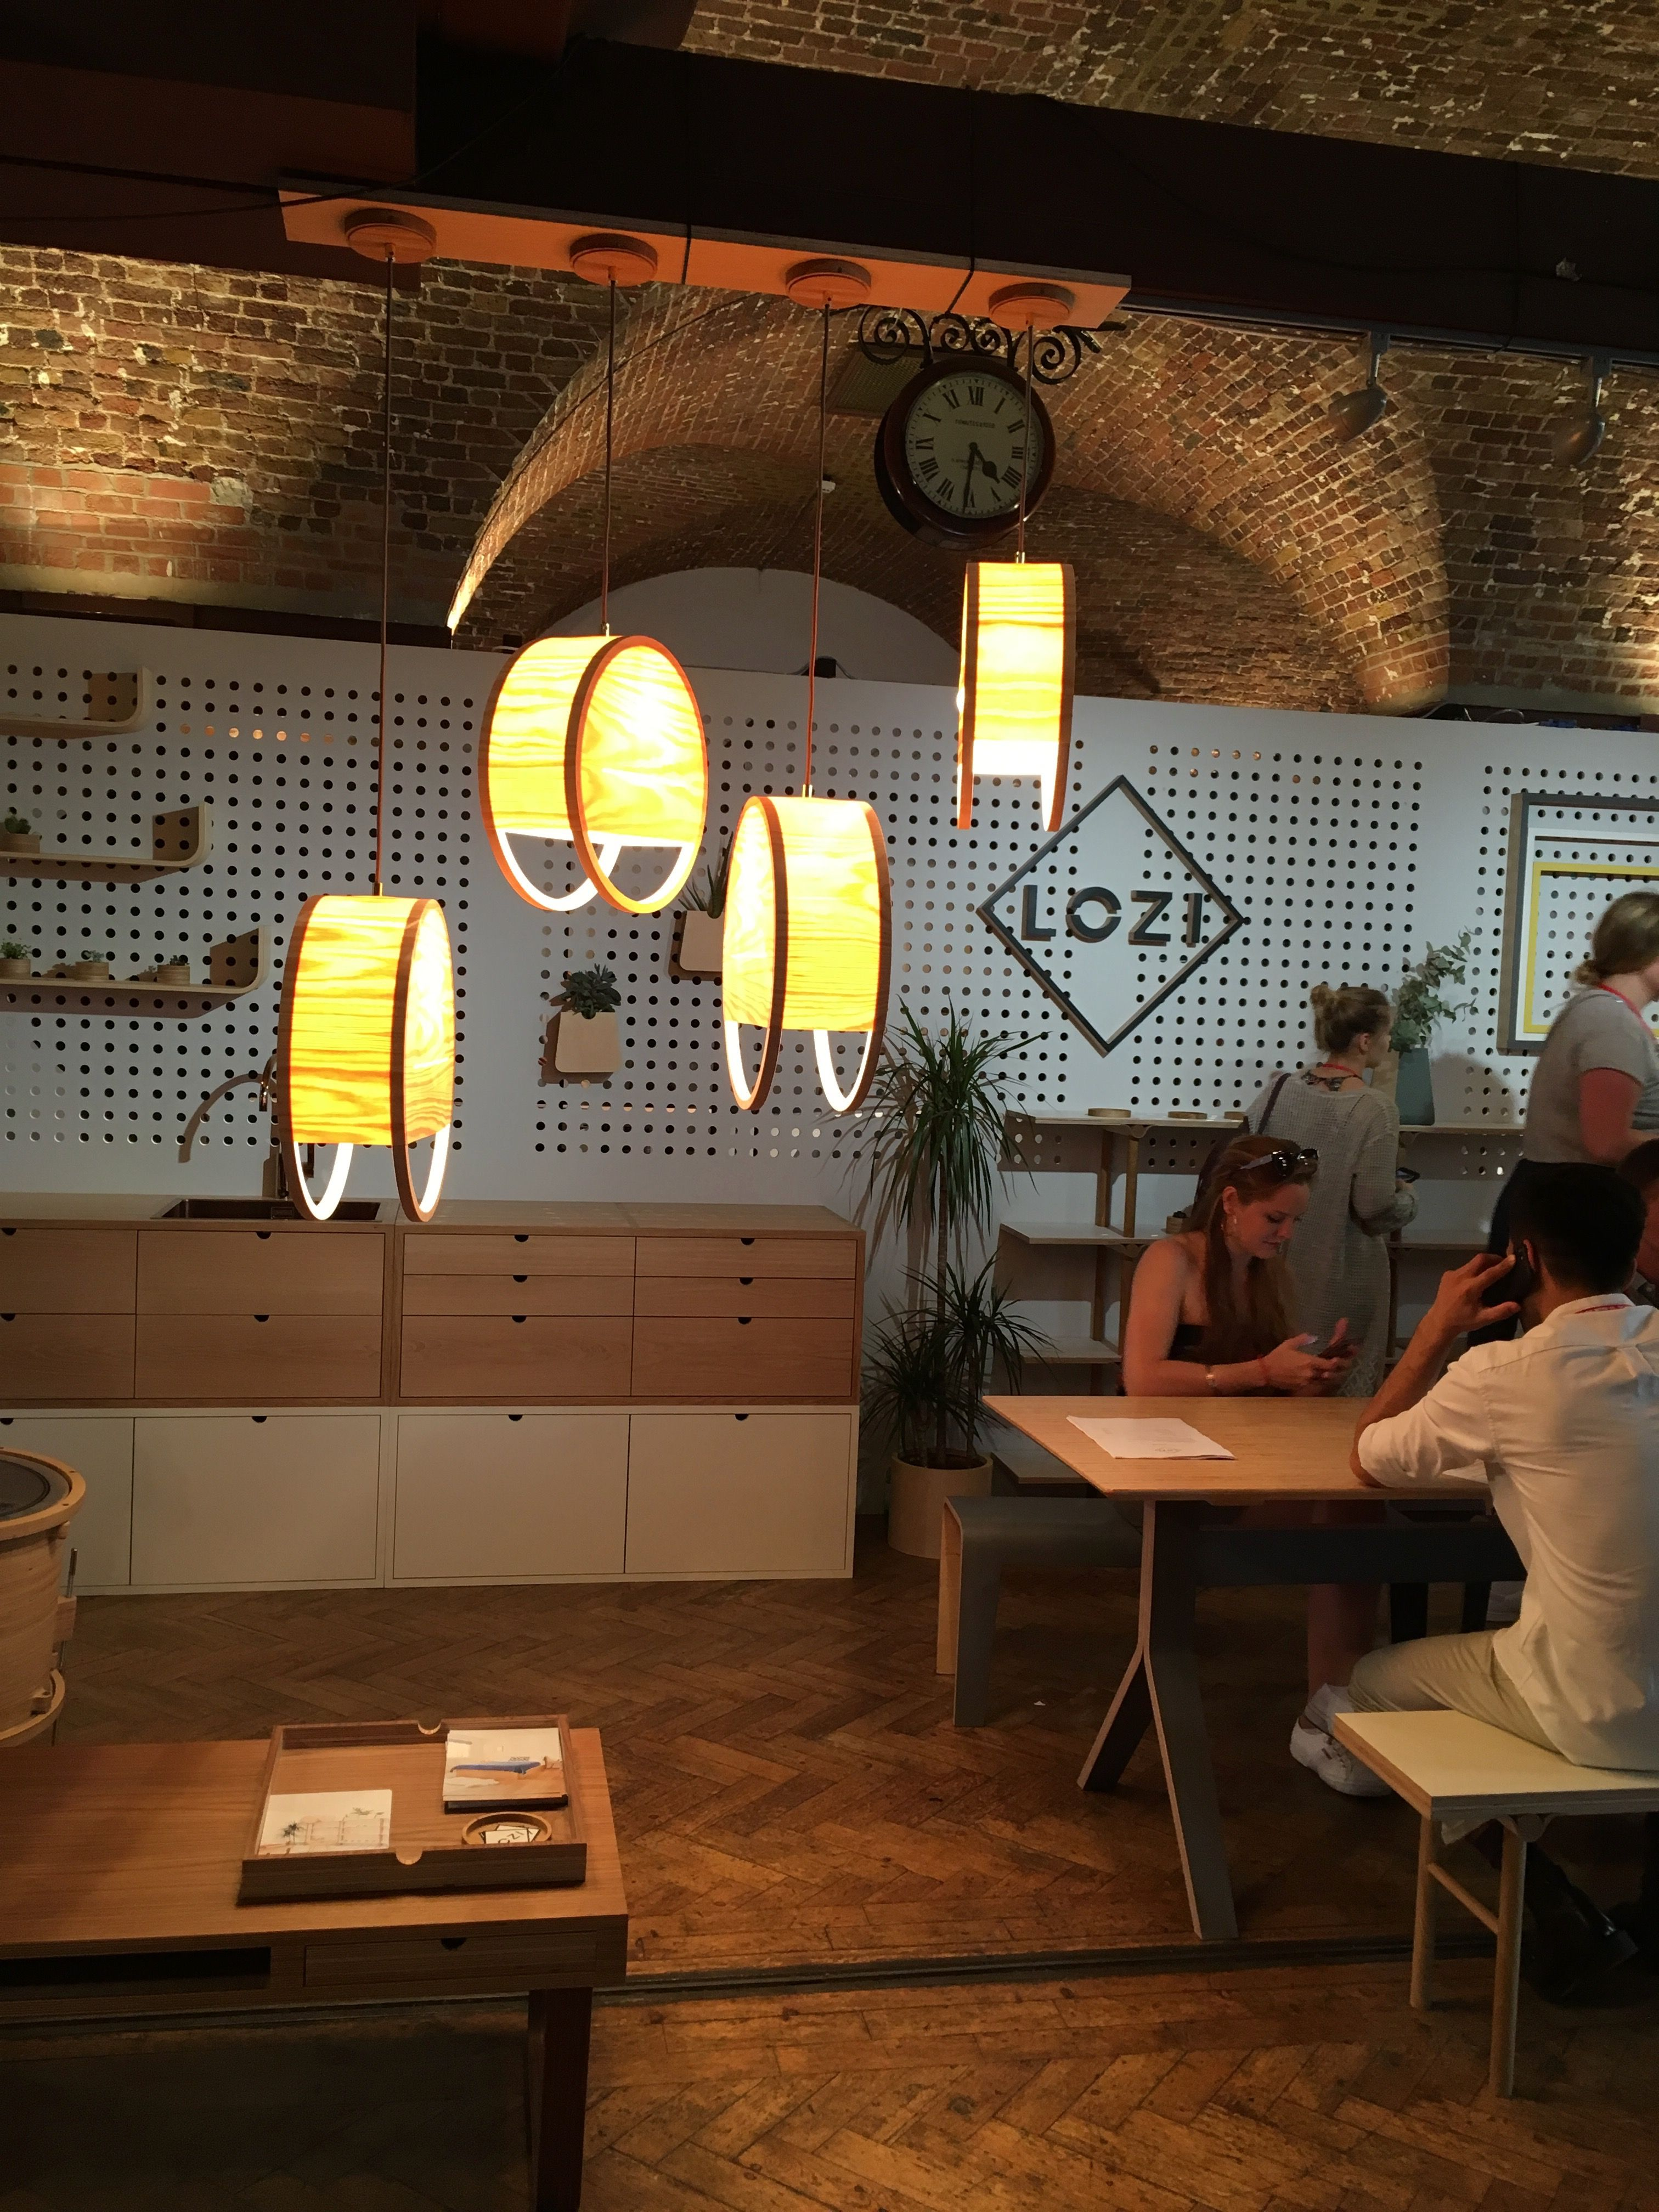 Merveilleux The Hackney Based Company @Lozi Makes Bespoke Furniture By Combining Digital